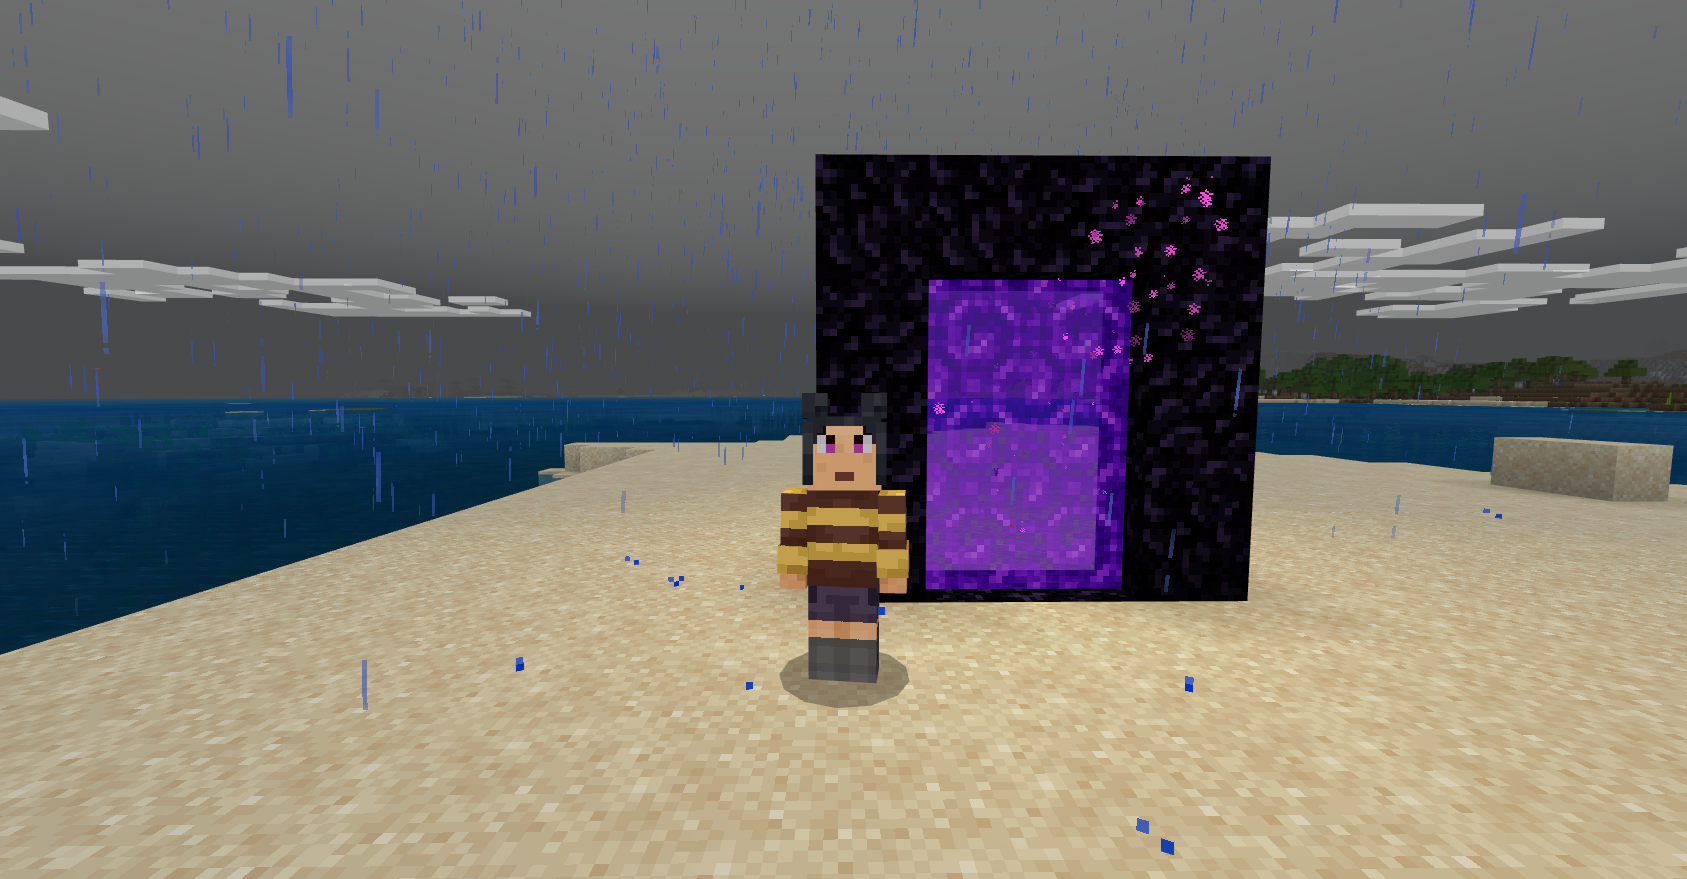 A Minecraft character in a striped sweater stands next to a Nether Portal